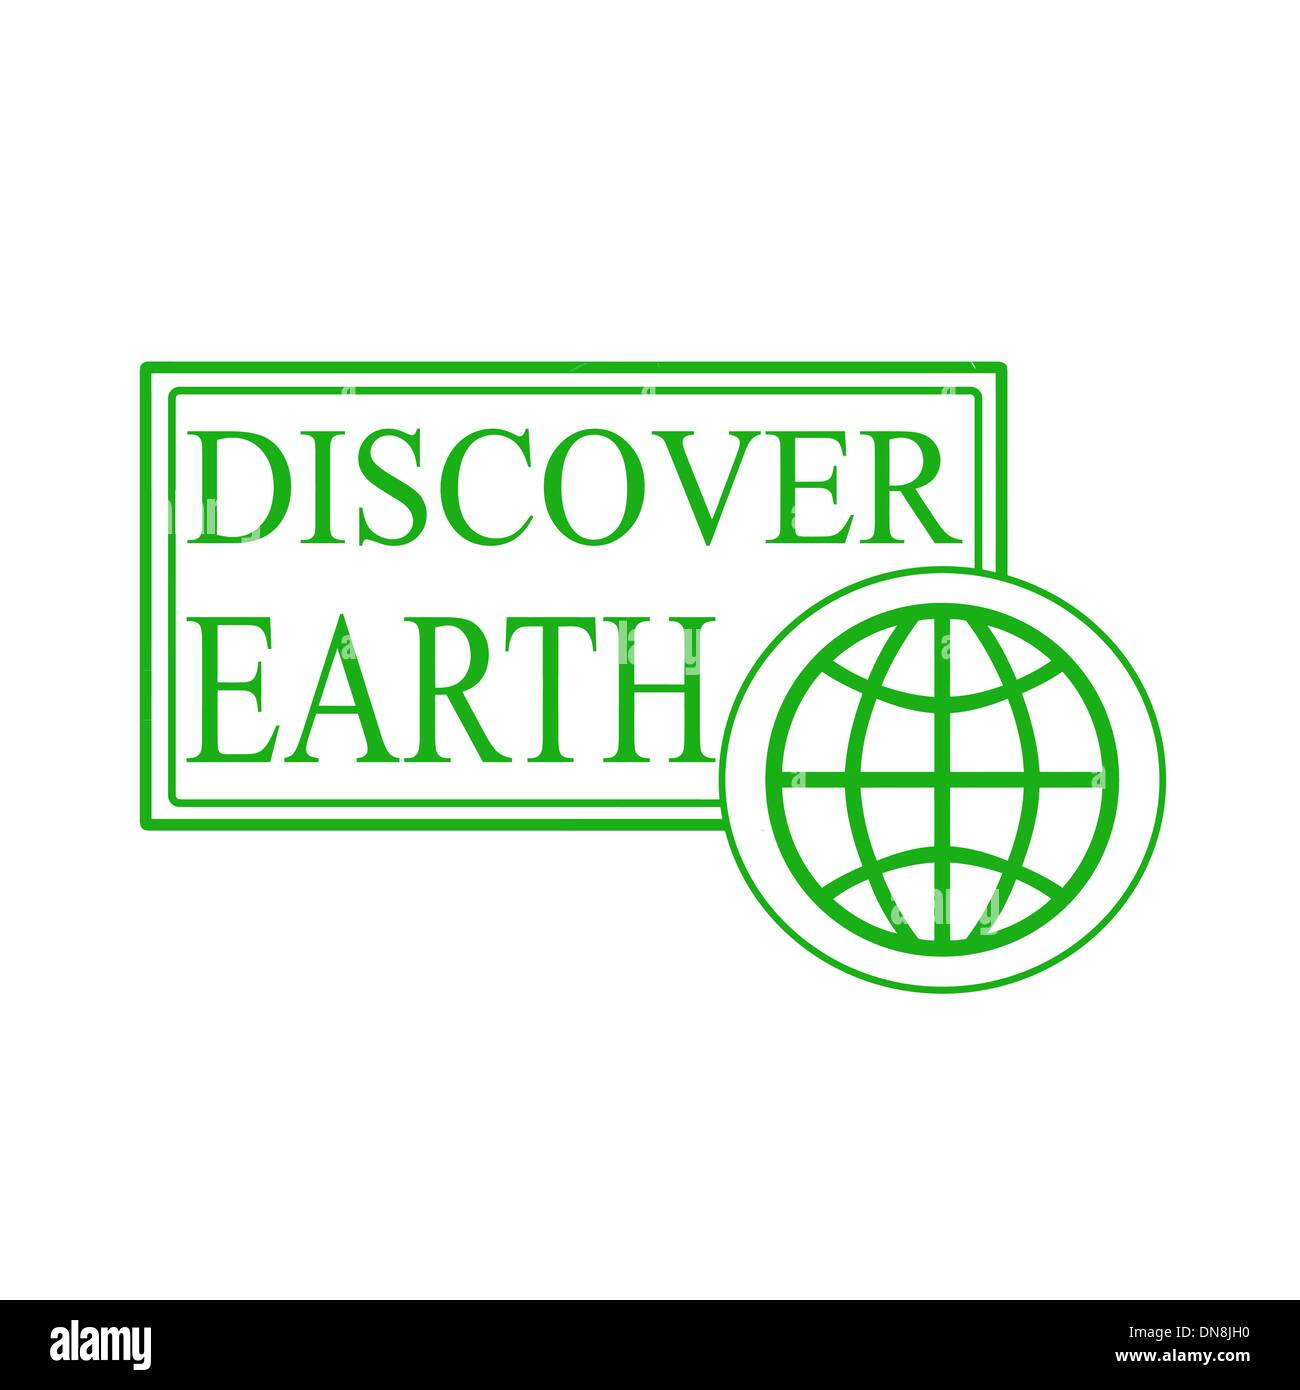 Discover Earth - Stock Image